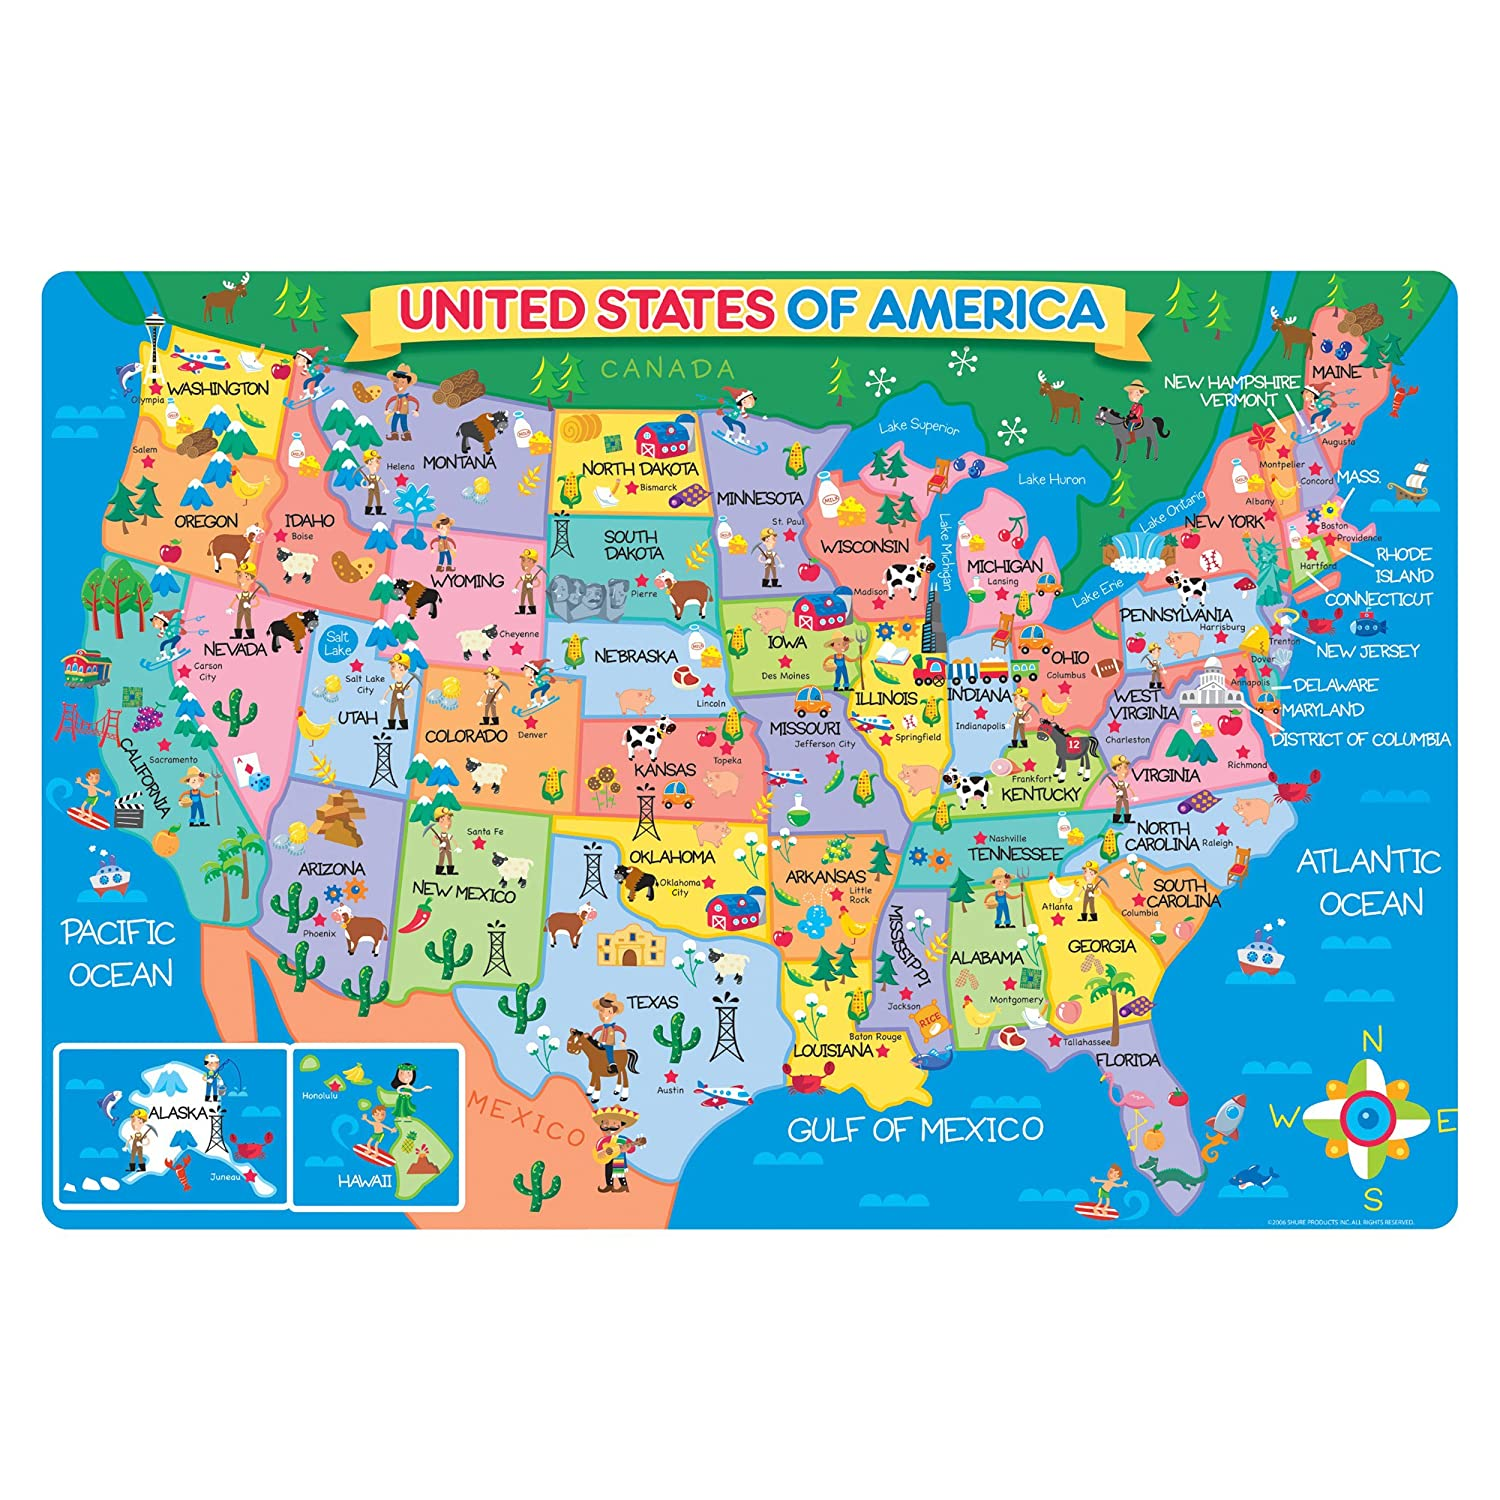 Superb Examples Of Infographic Maps United States Map - 4 of the prominent 4 regions of us map